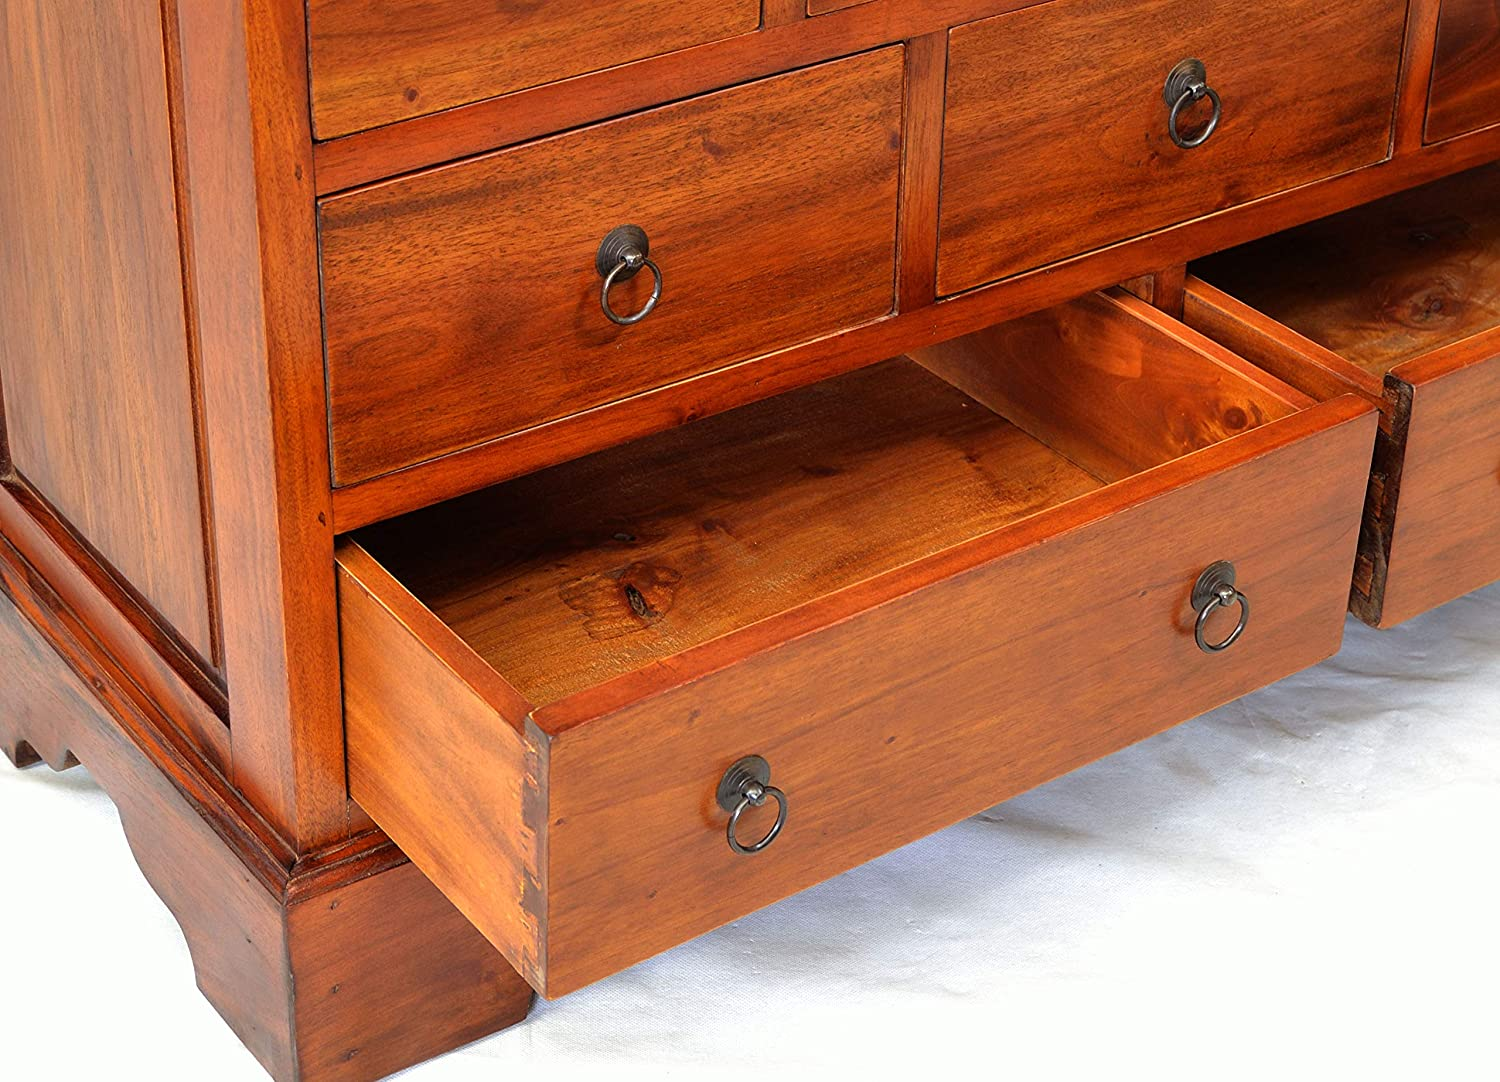 Plan Chest Edwardian Mahogany Music Edwardian (1901-1910) Antiques